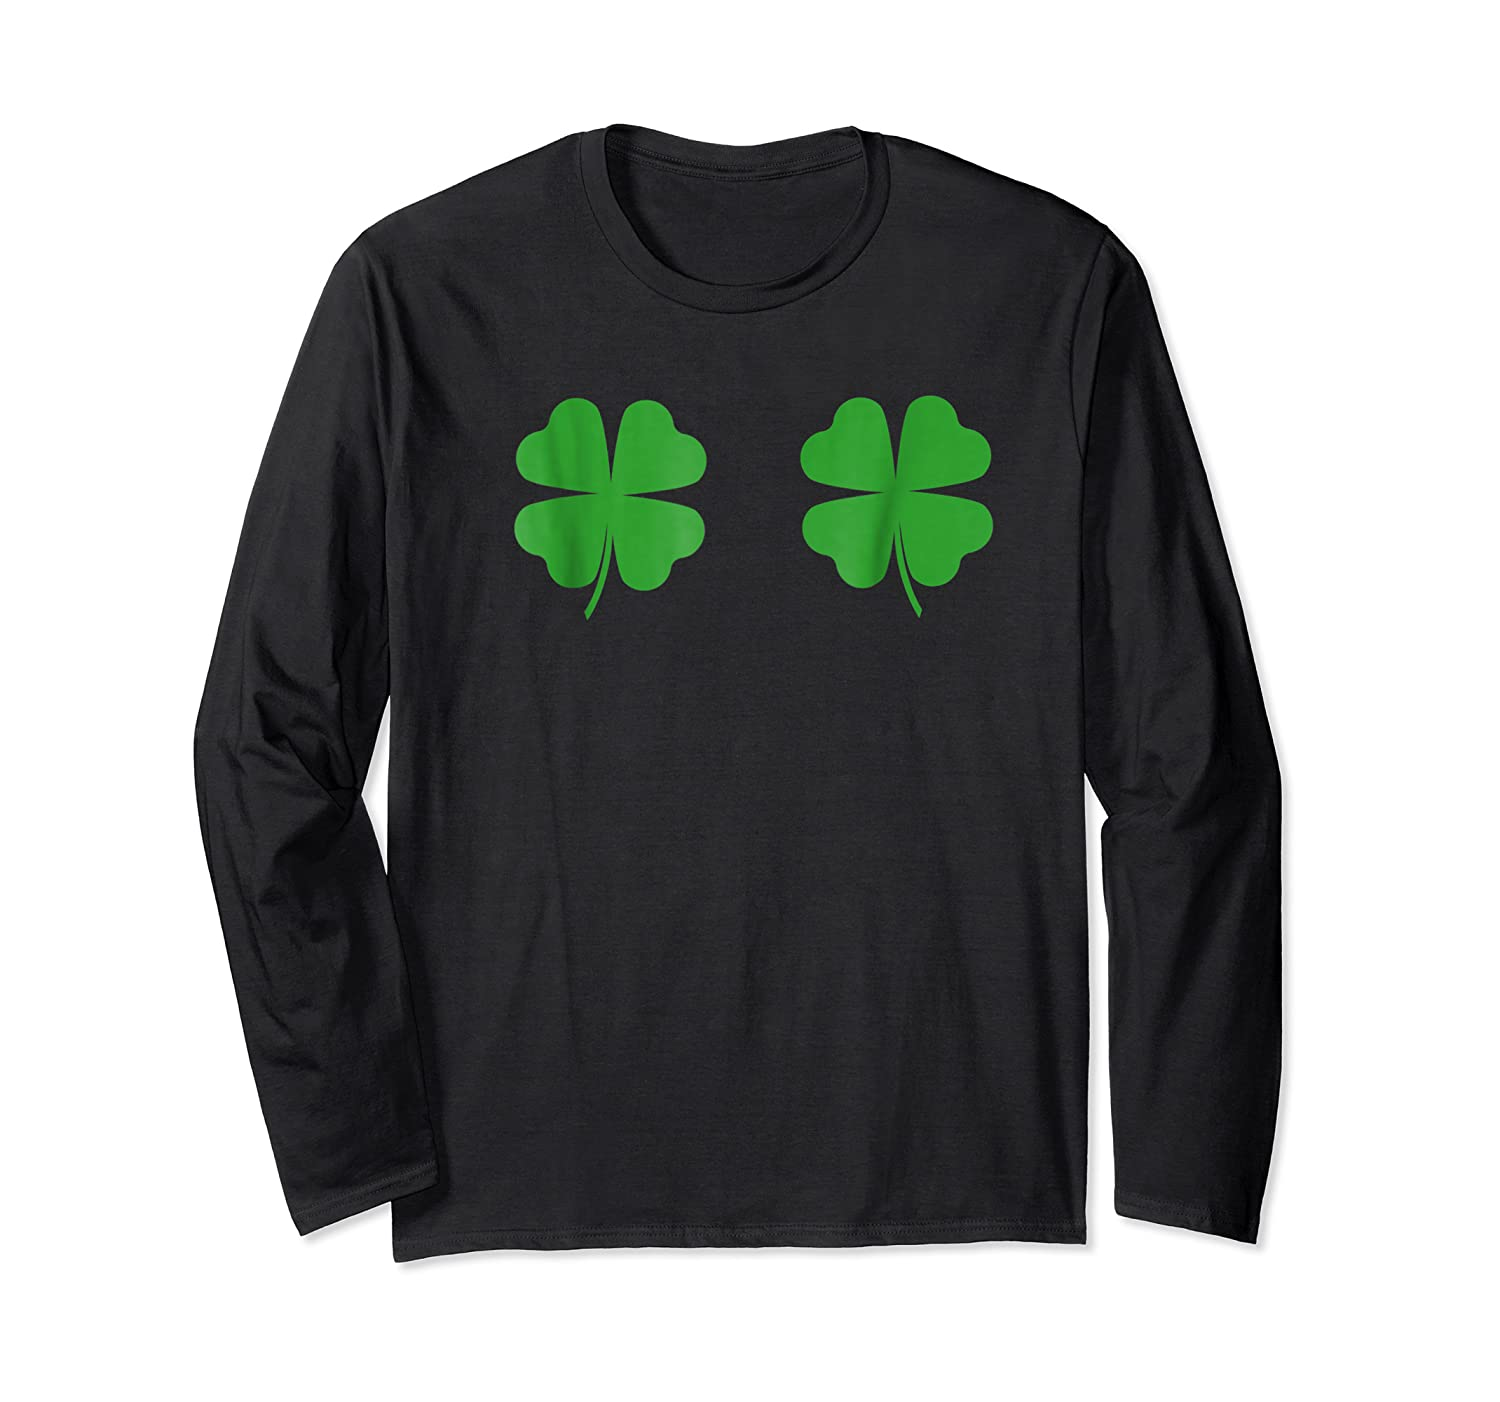 Two Clovers Tshirt Funny St Patrick S Day Boob Shirt Lucky Long Sleeve T-shirt